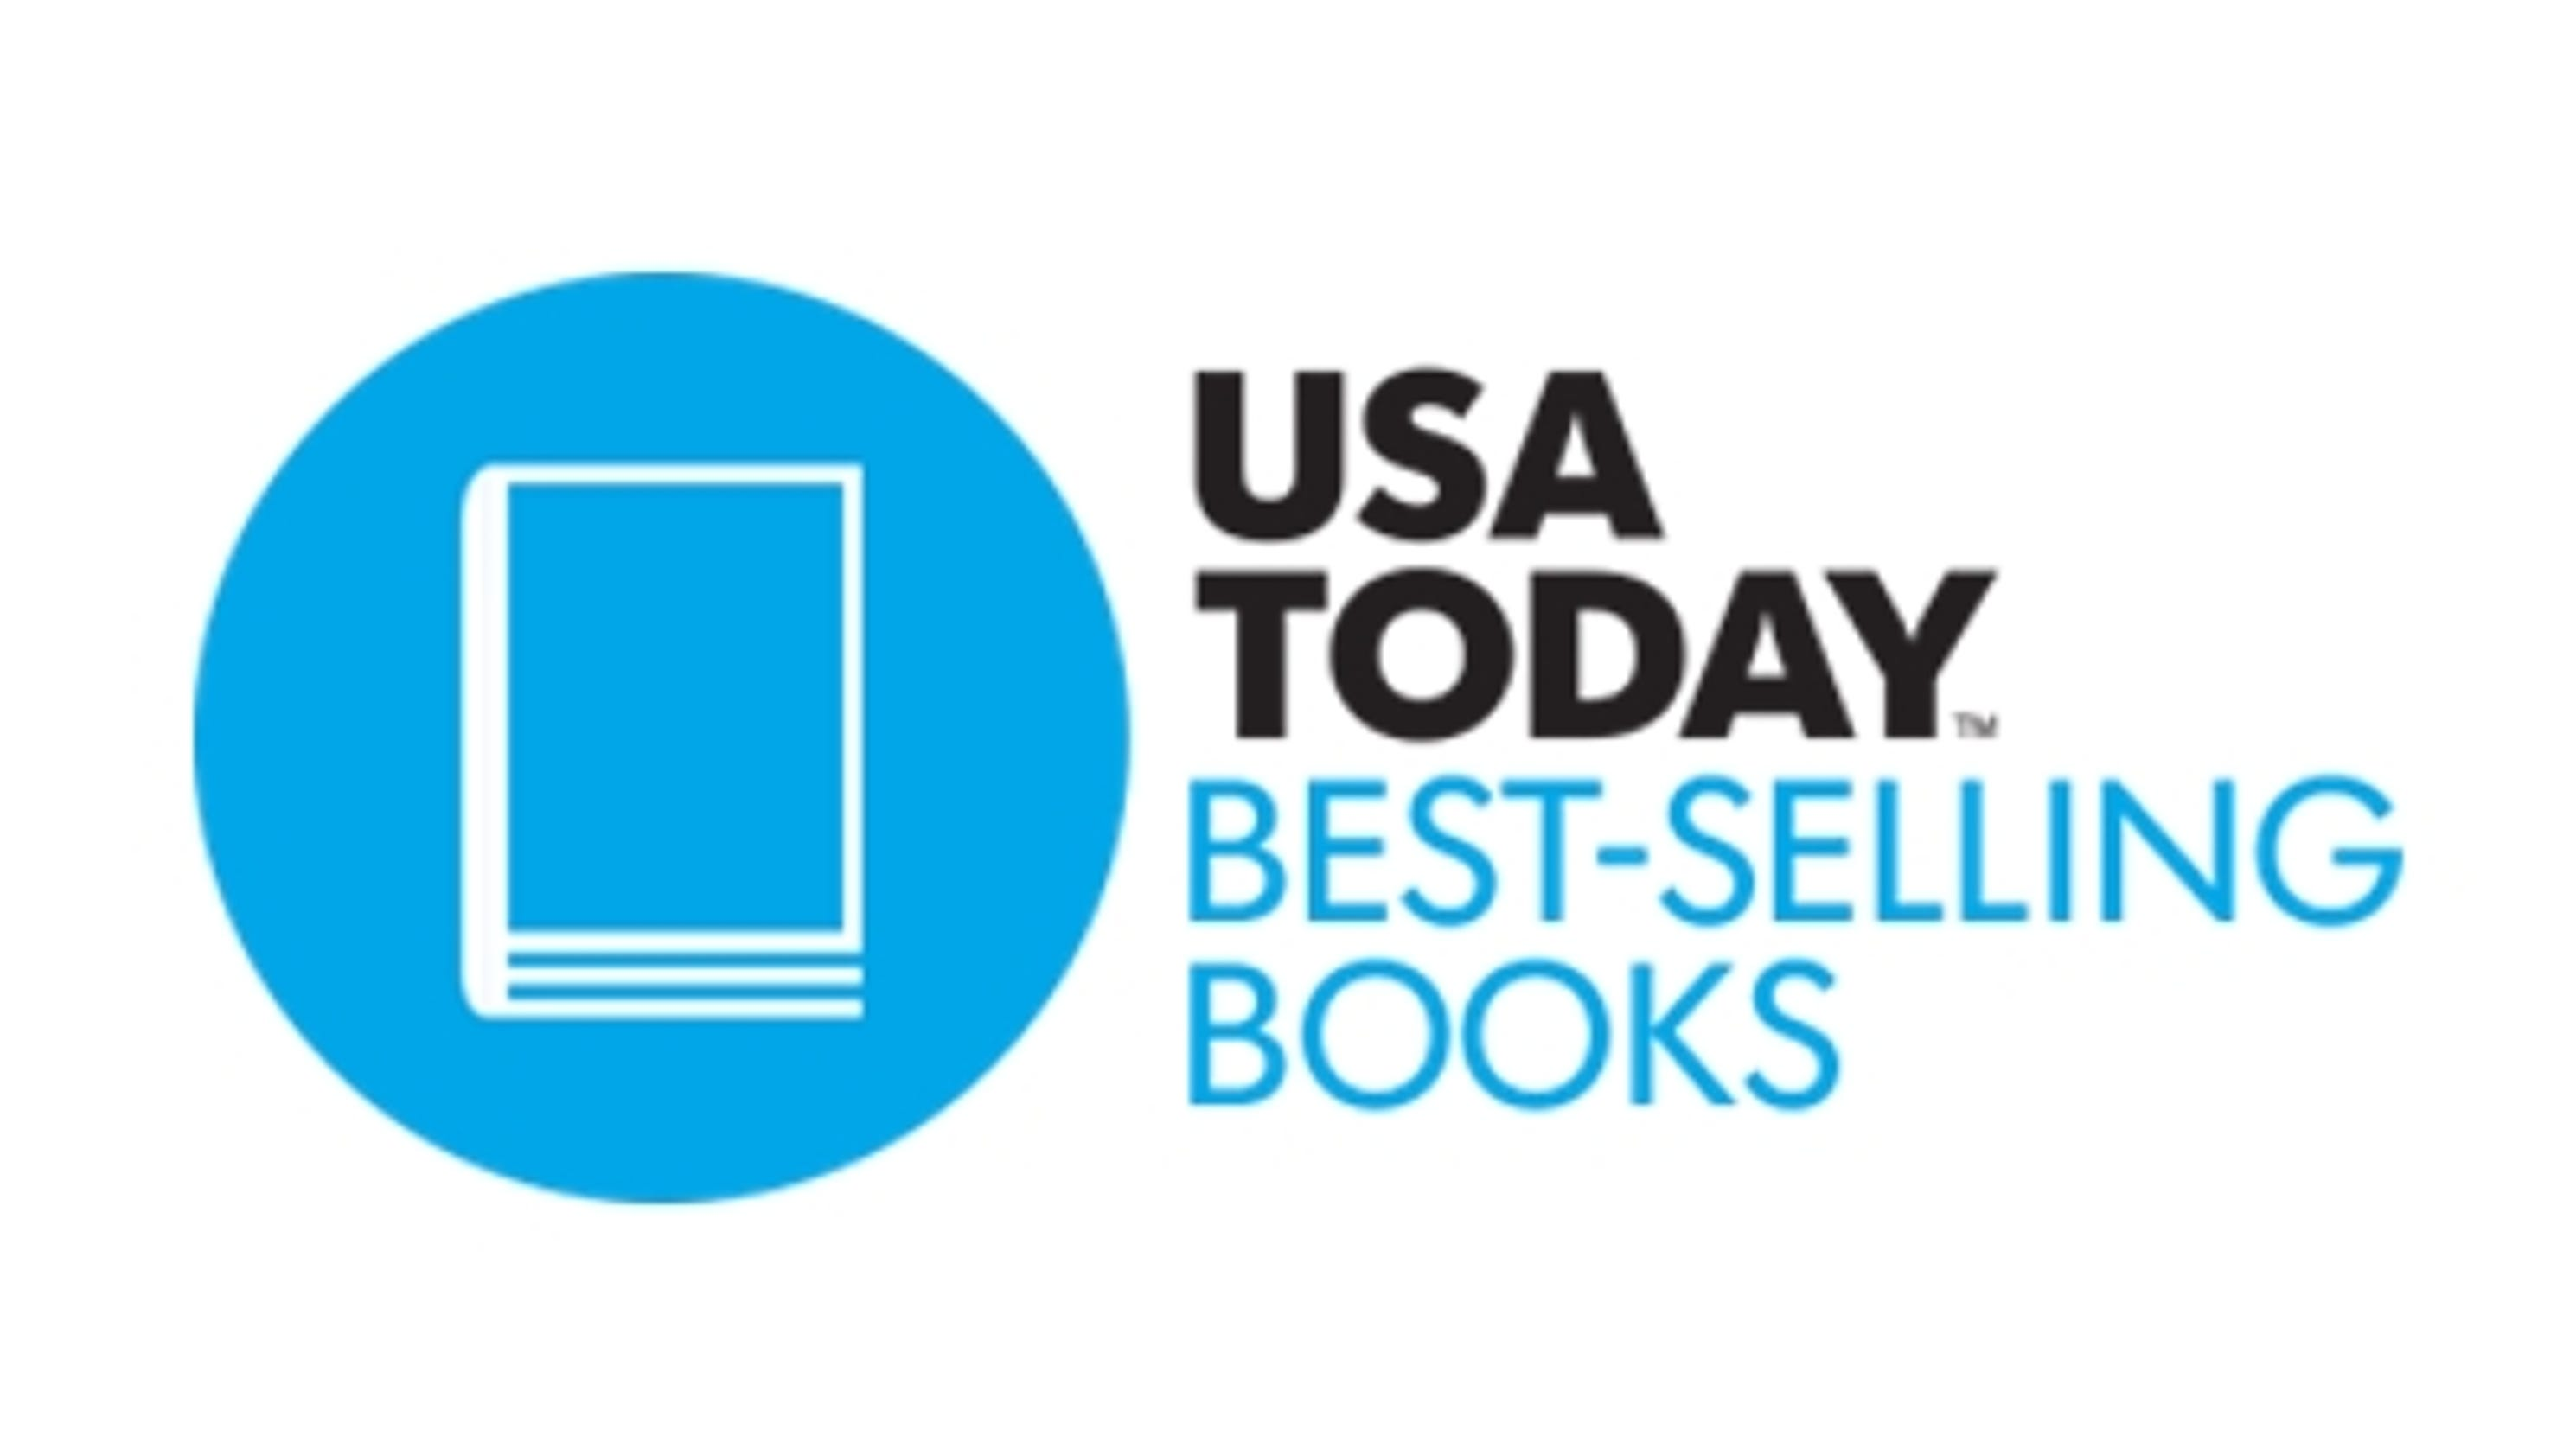 App shopper sport archery resort games - Extras Usa Today S Weekly Best Selling Books